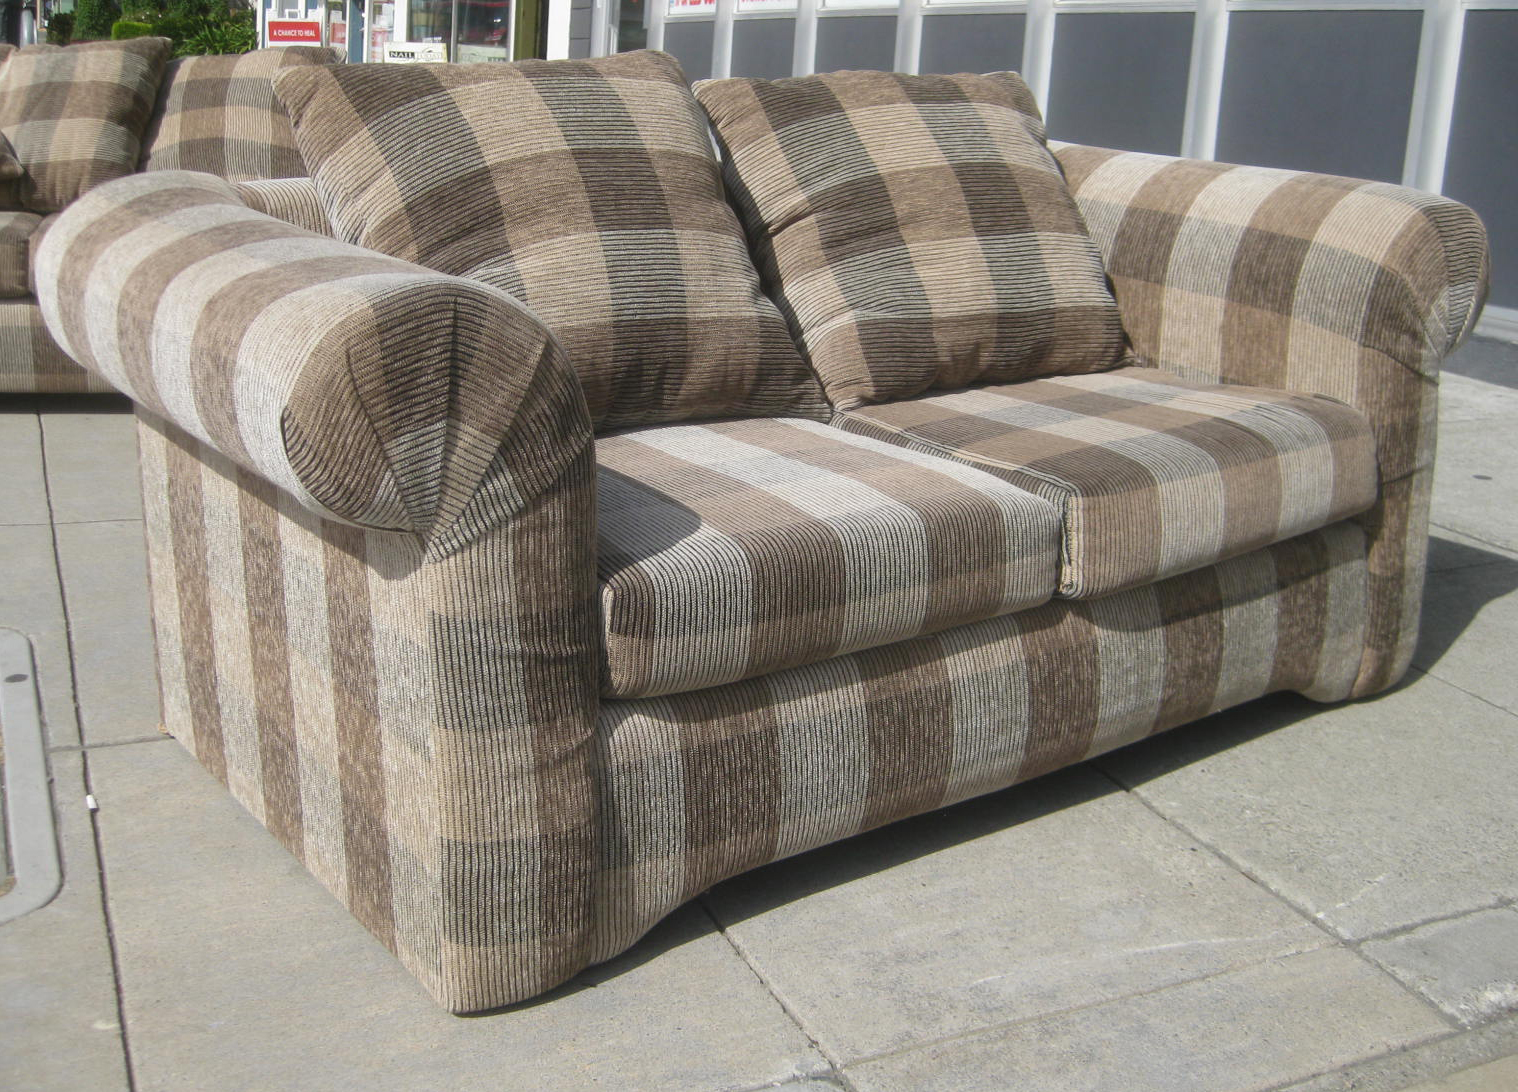 Uhuru Furniture Collectibles Sold Plaid Loveseat 80